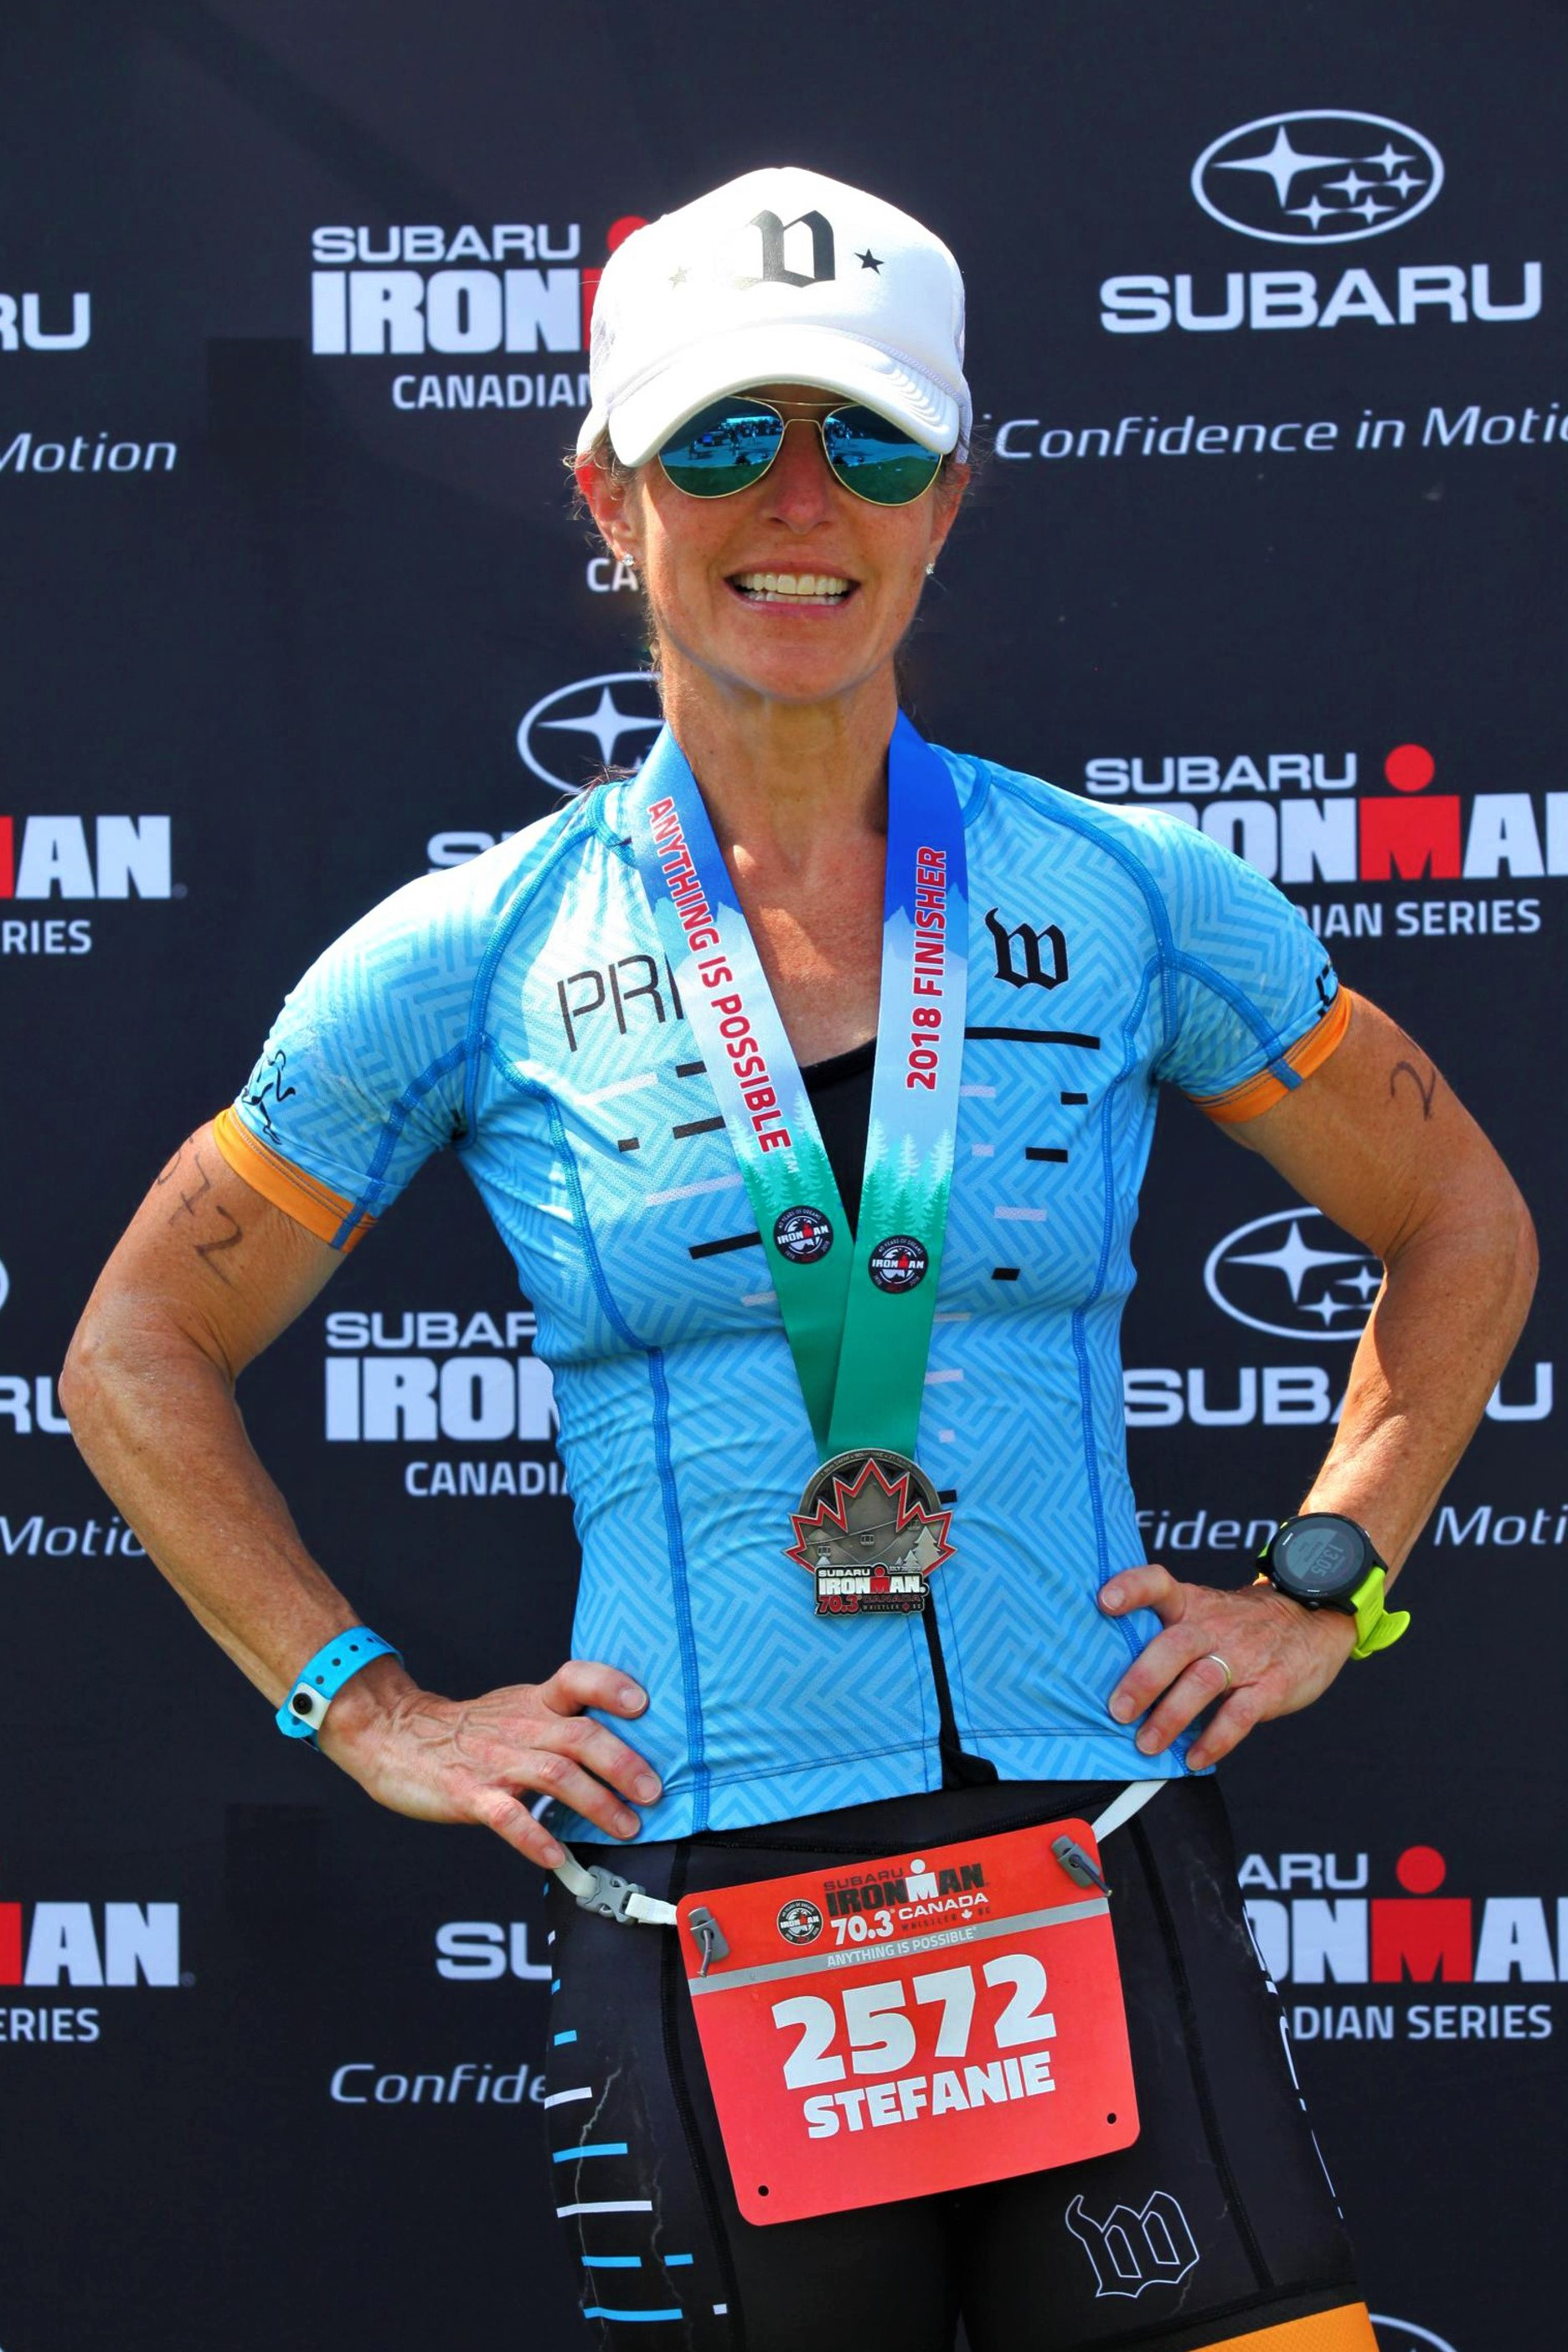 Stefanie Magnuson at IM 70.3 Canada earlier this year